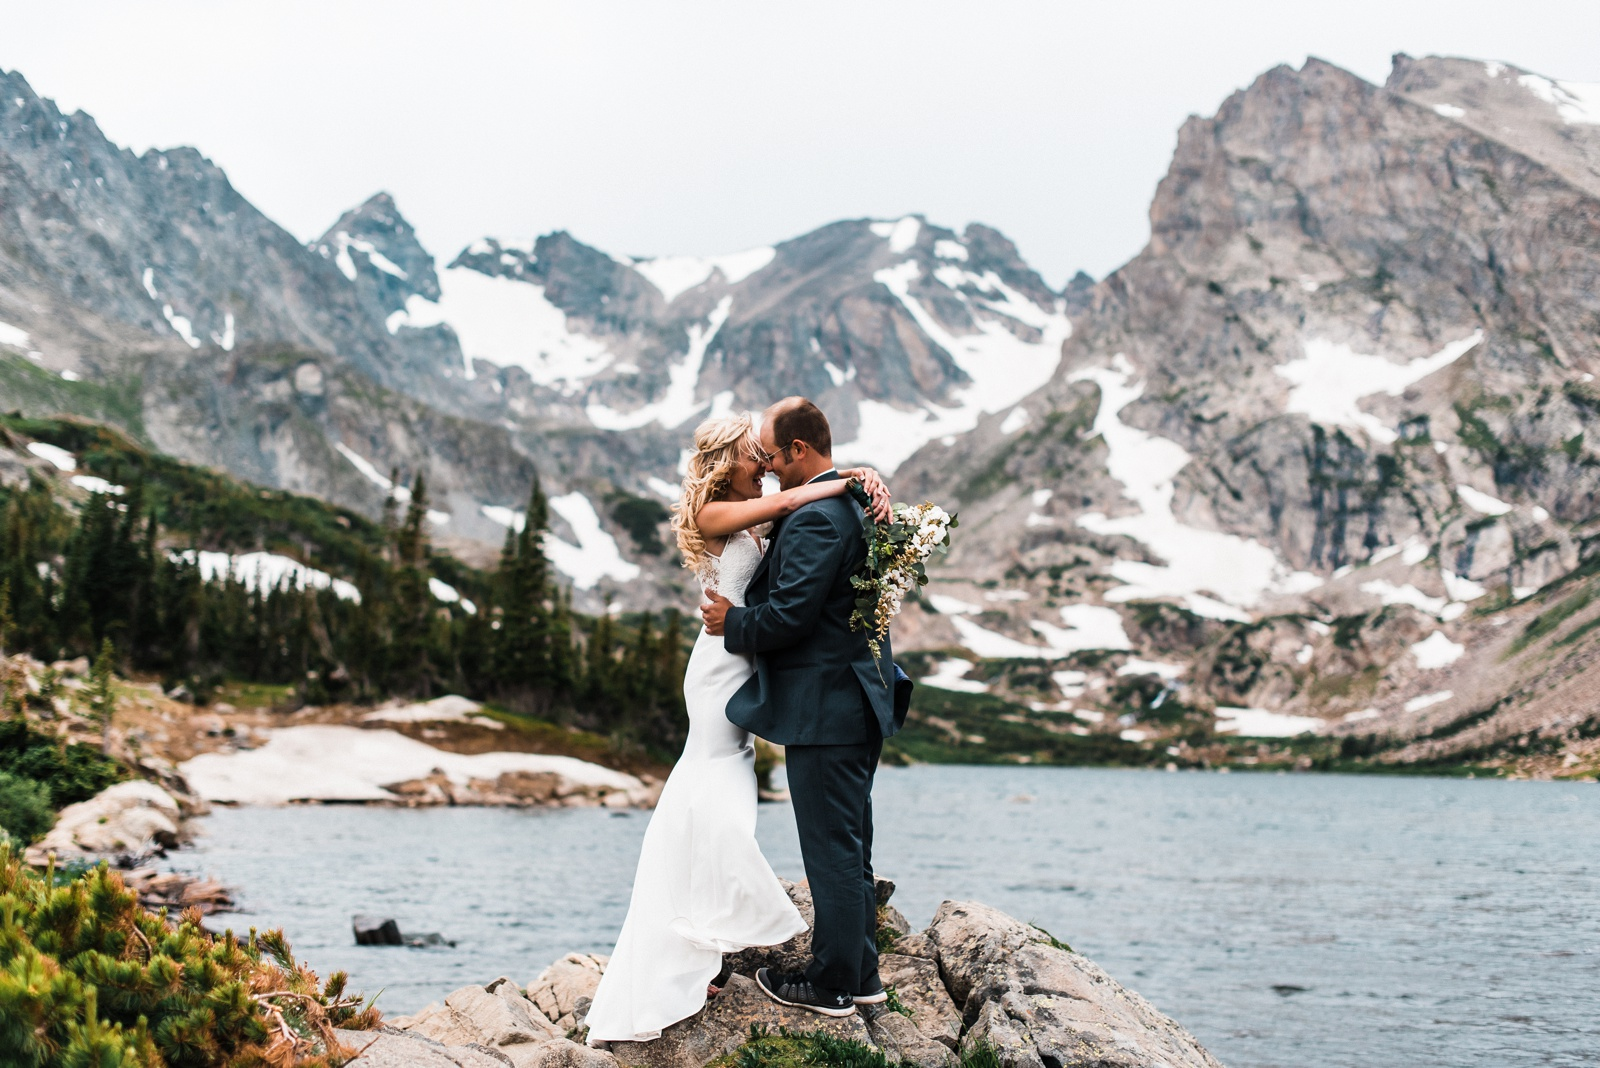 Colorado Elopement In The Rocky Mountains The Foxes Photography